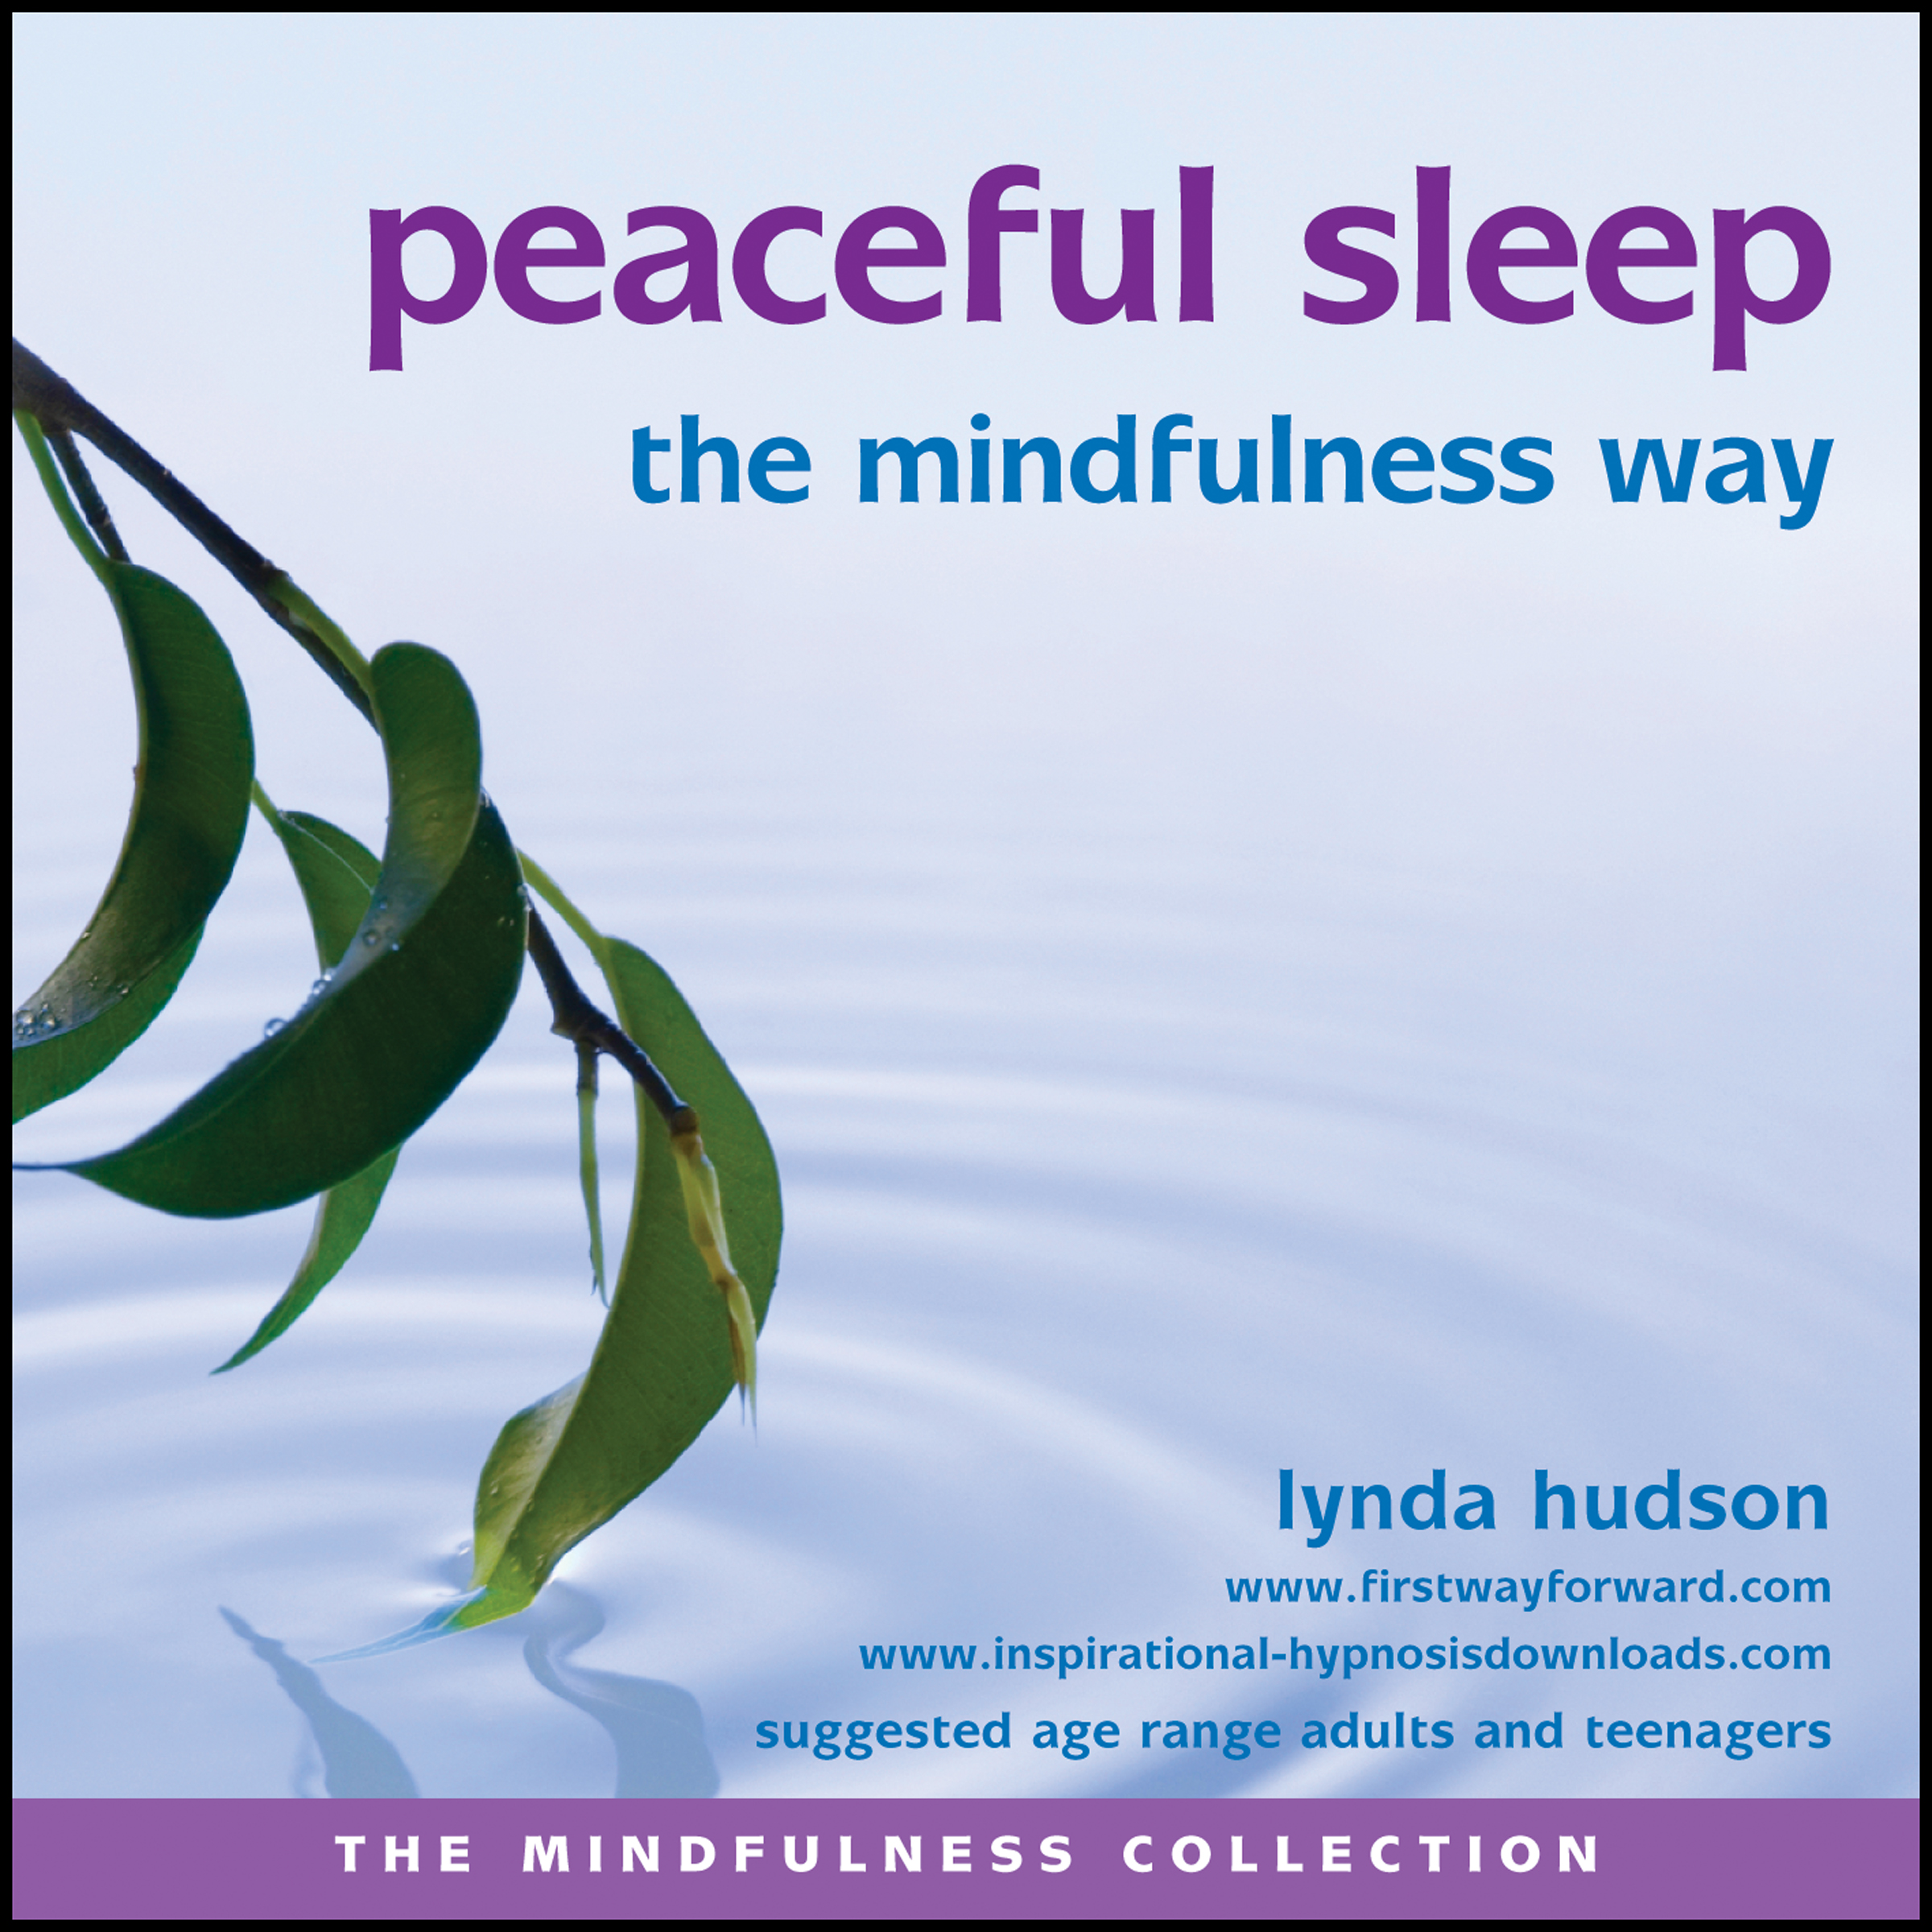 Peaceful sleep the mindfulness way